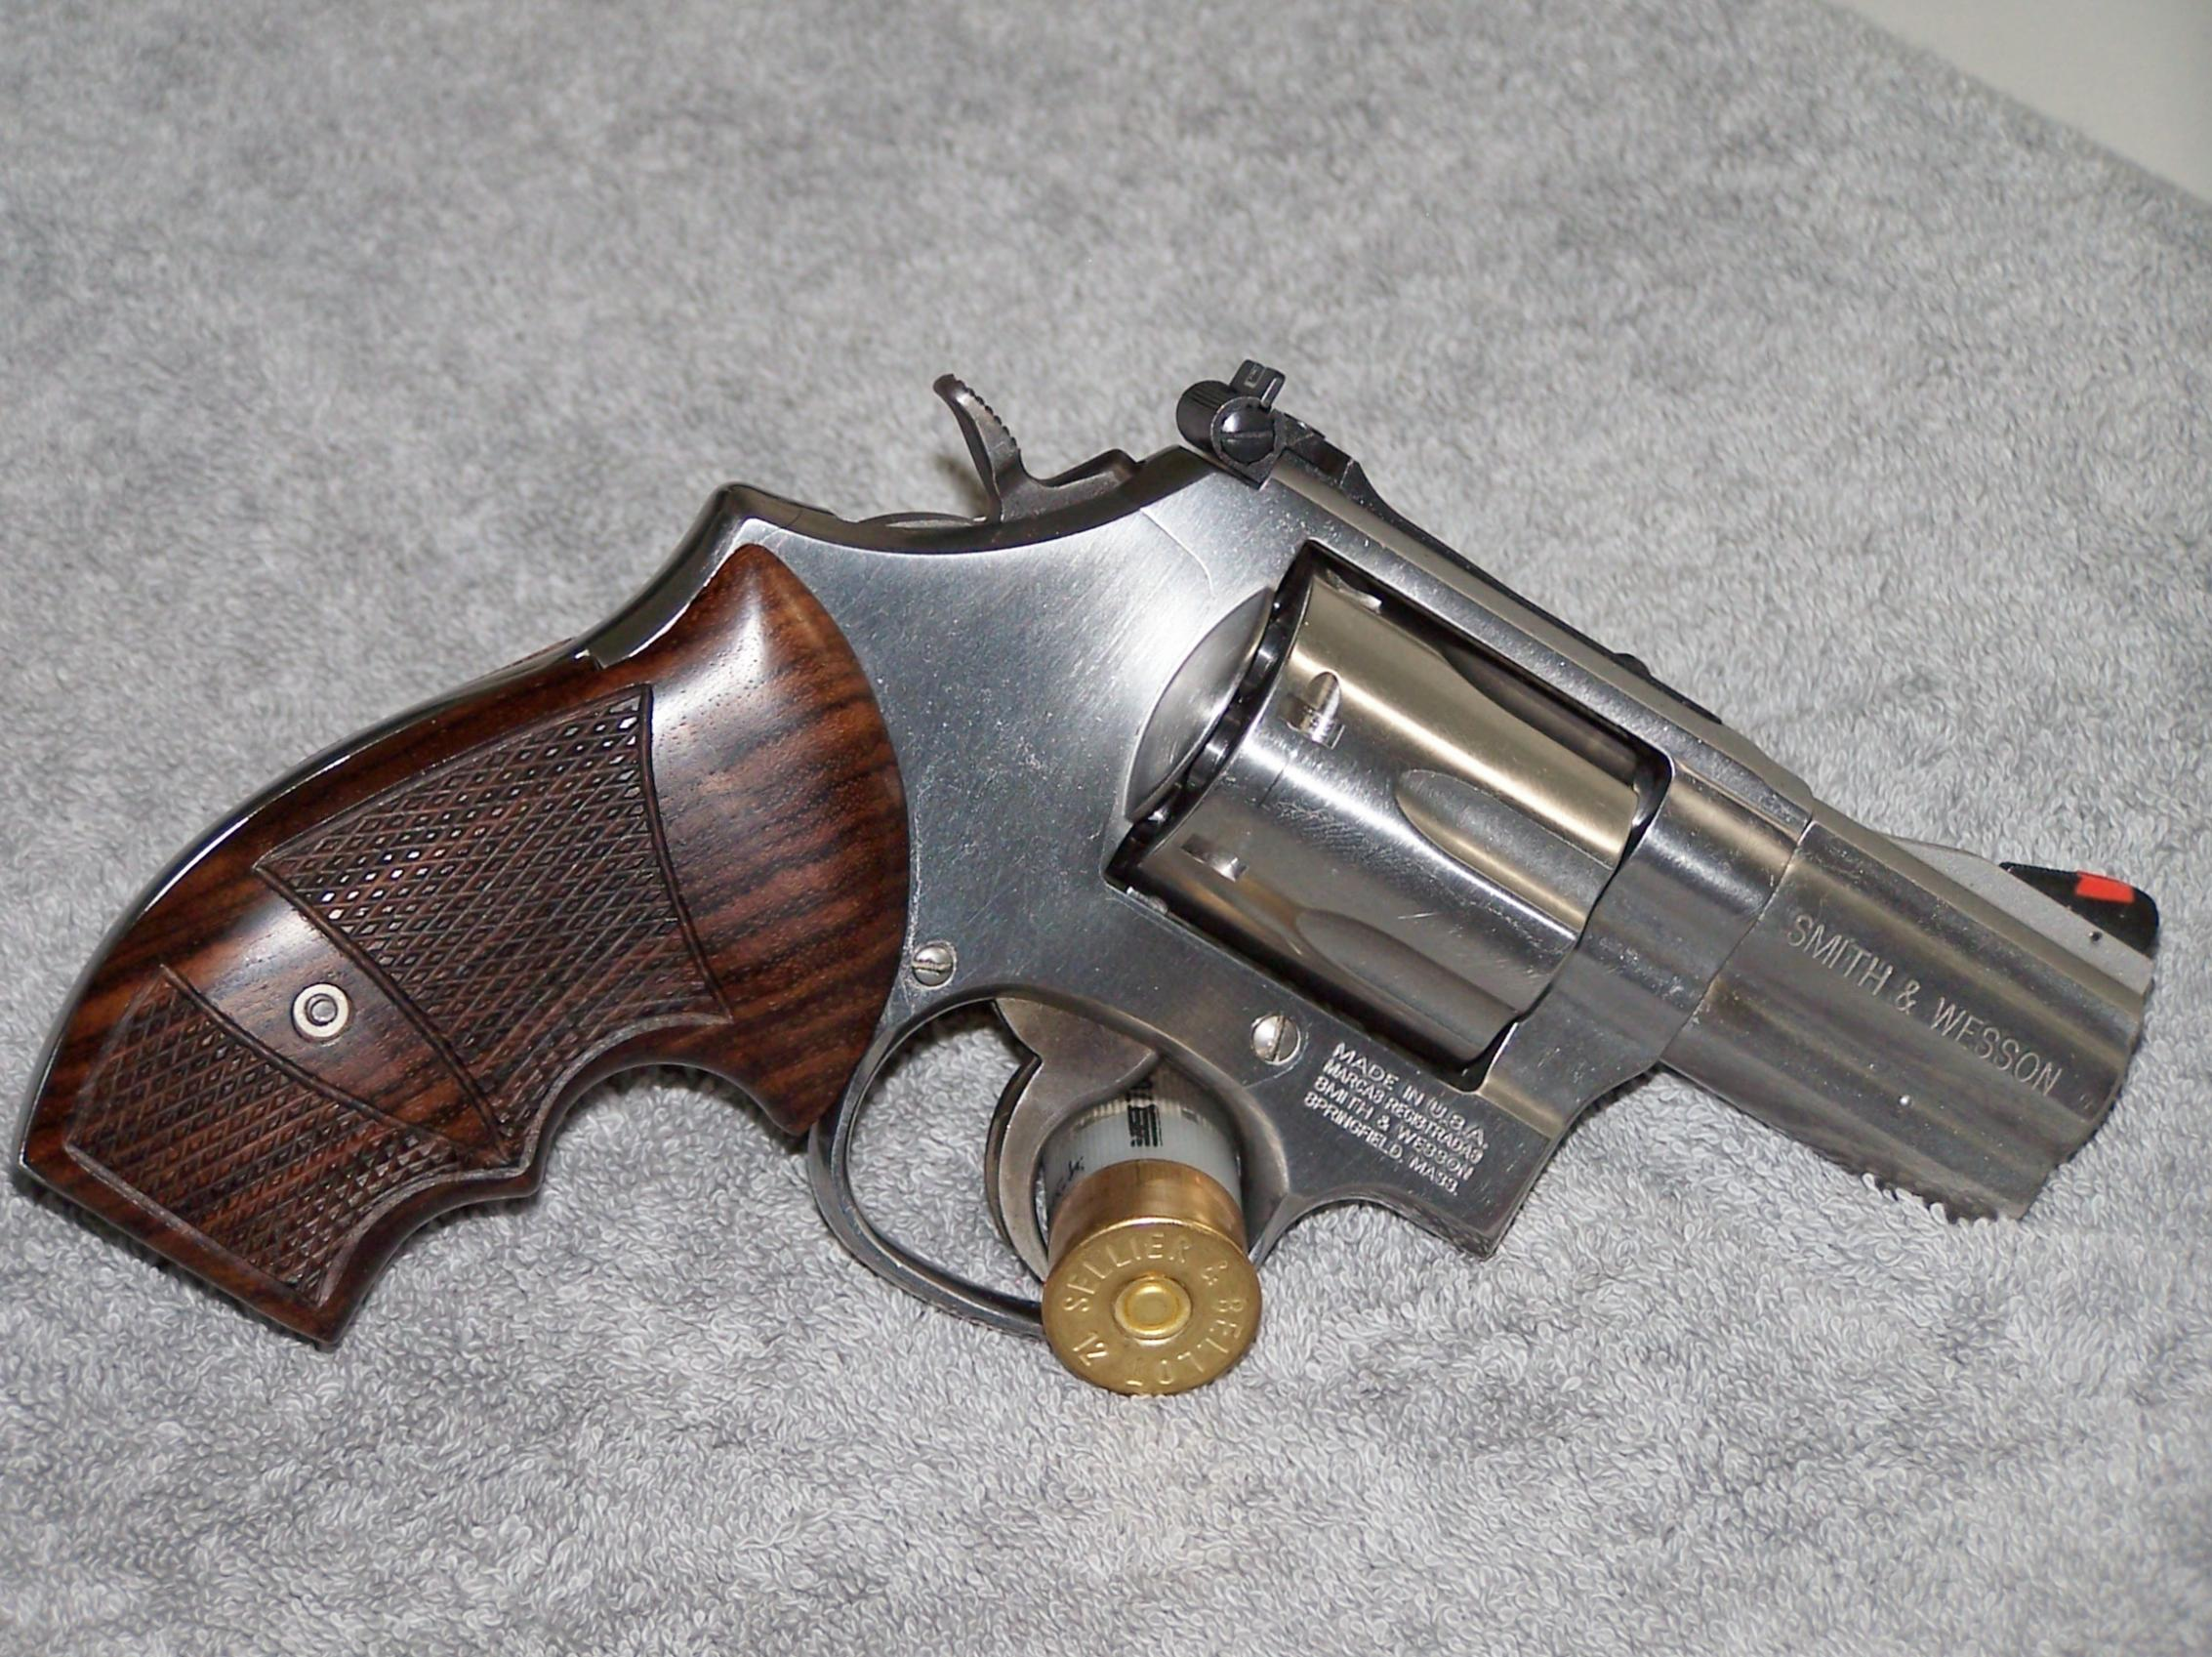 Anyone Carry An L Frame? Smith & Wesson 686 To Be Exact? How?